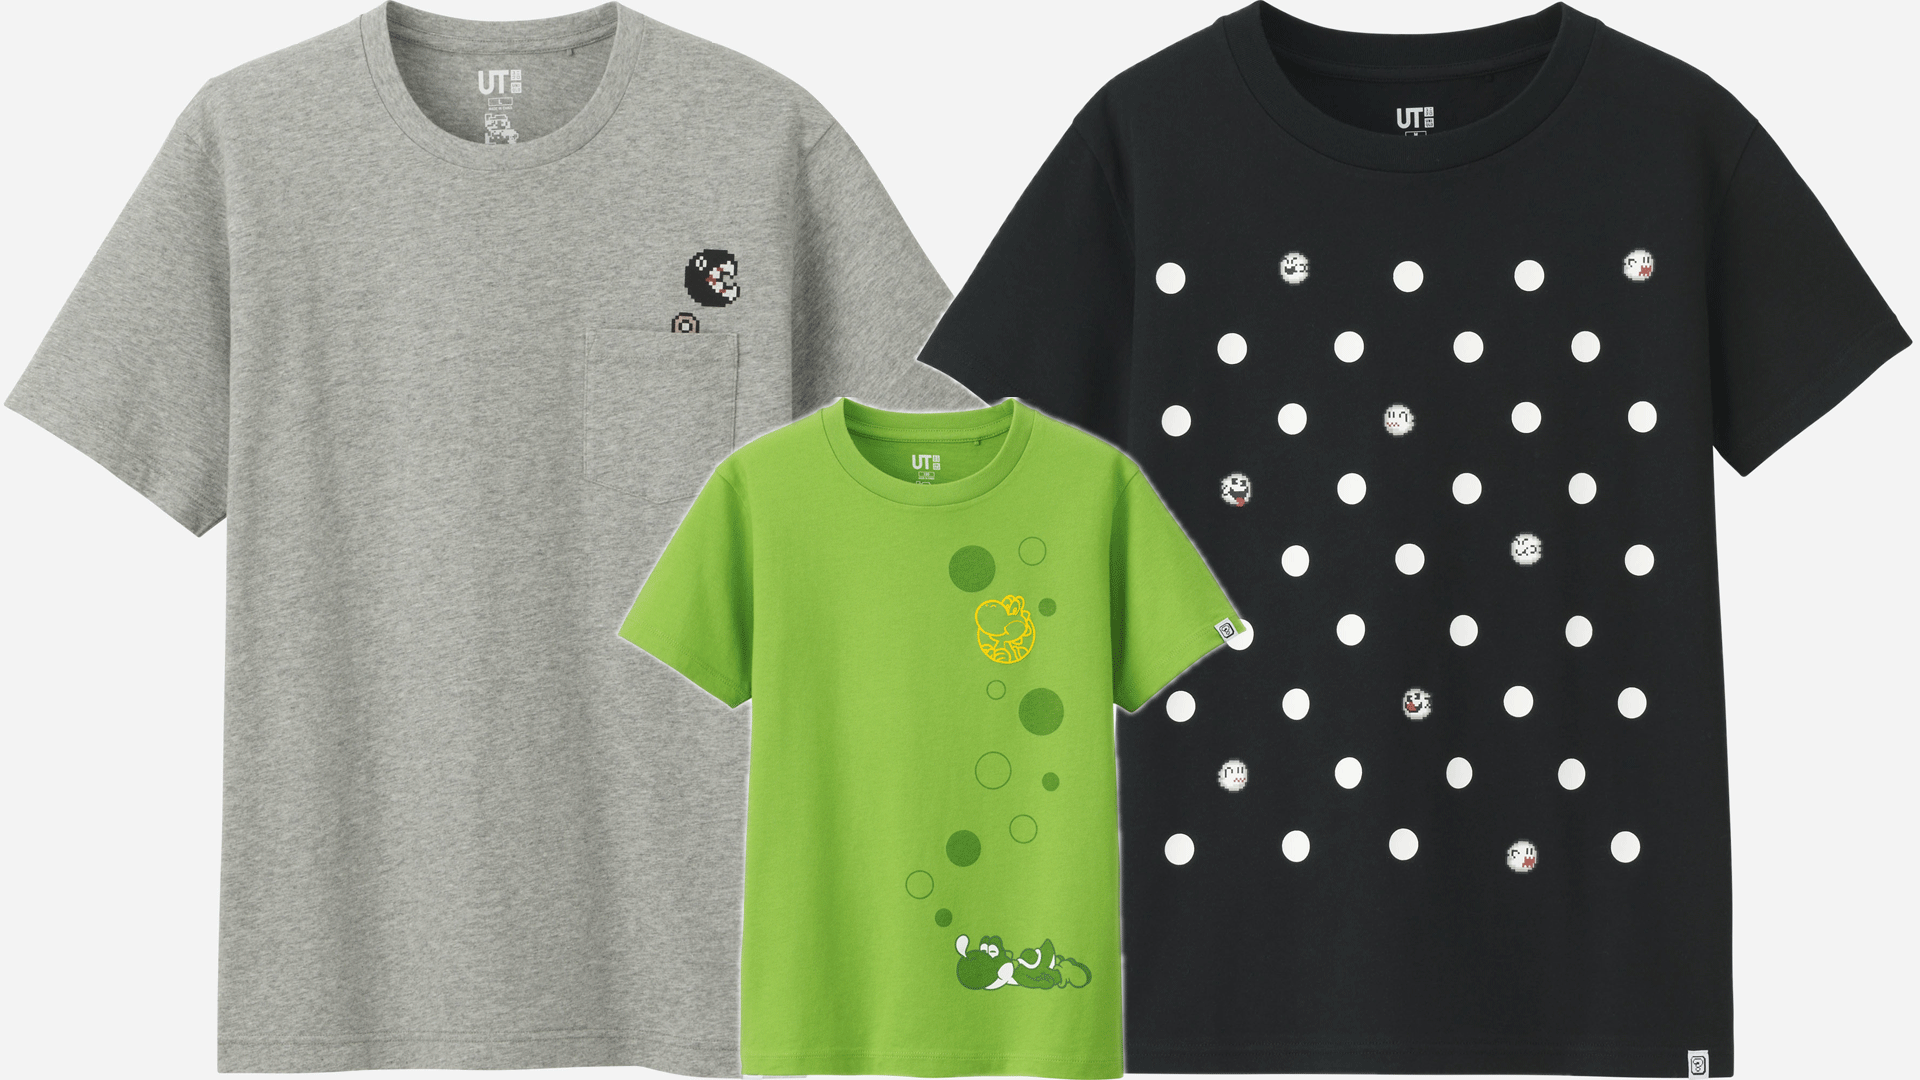 e5db37aec UT is the graphic T-shirt brand from UNIQLO and this spring they are adding  more shirts for kids, men, and women with graphics based on Super Mario  Bros. ...